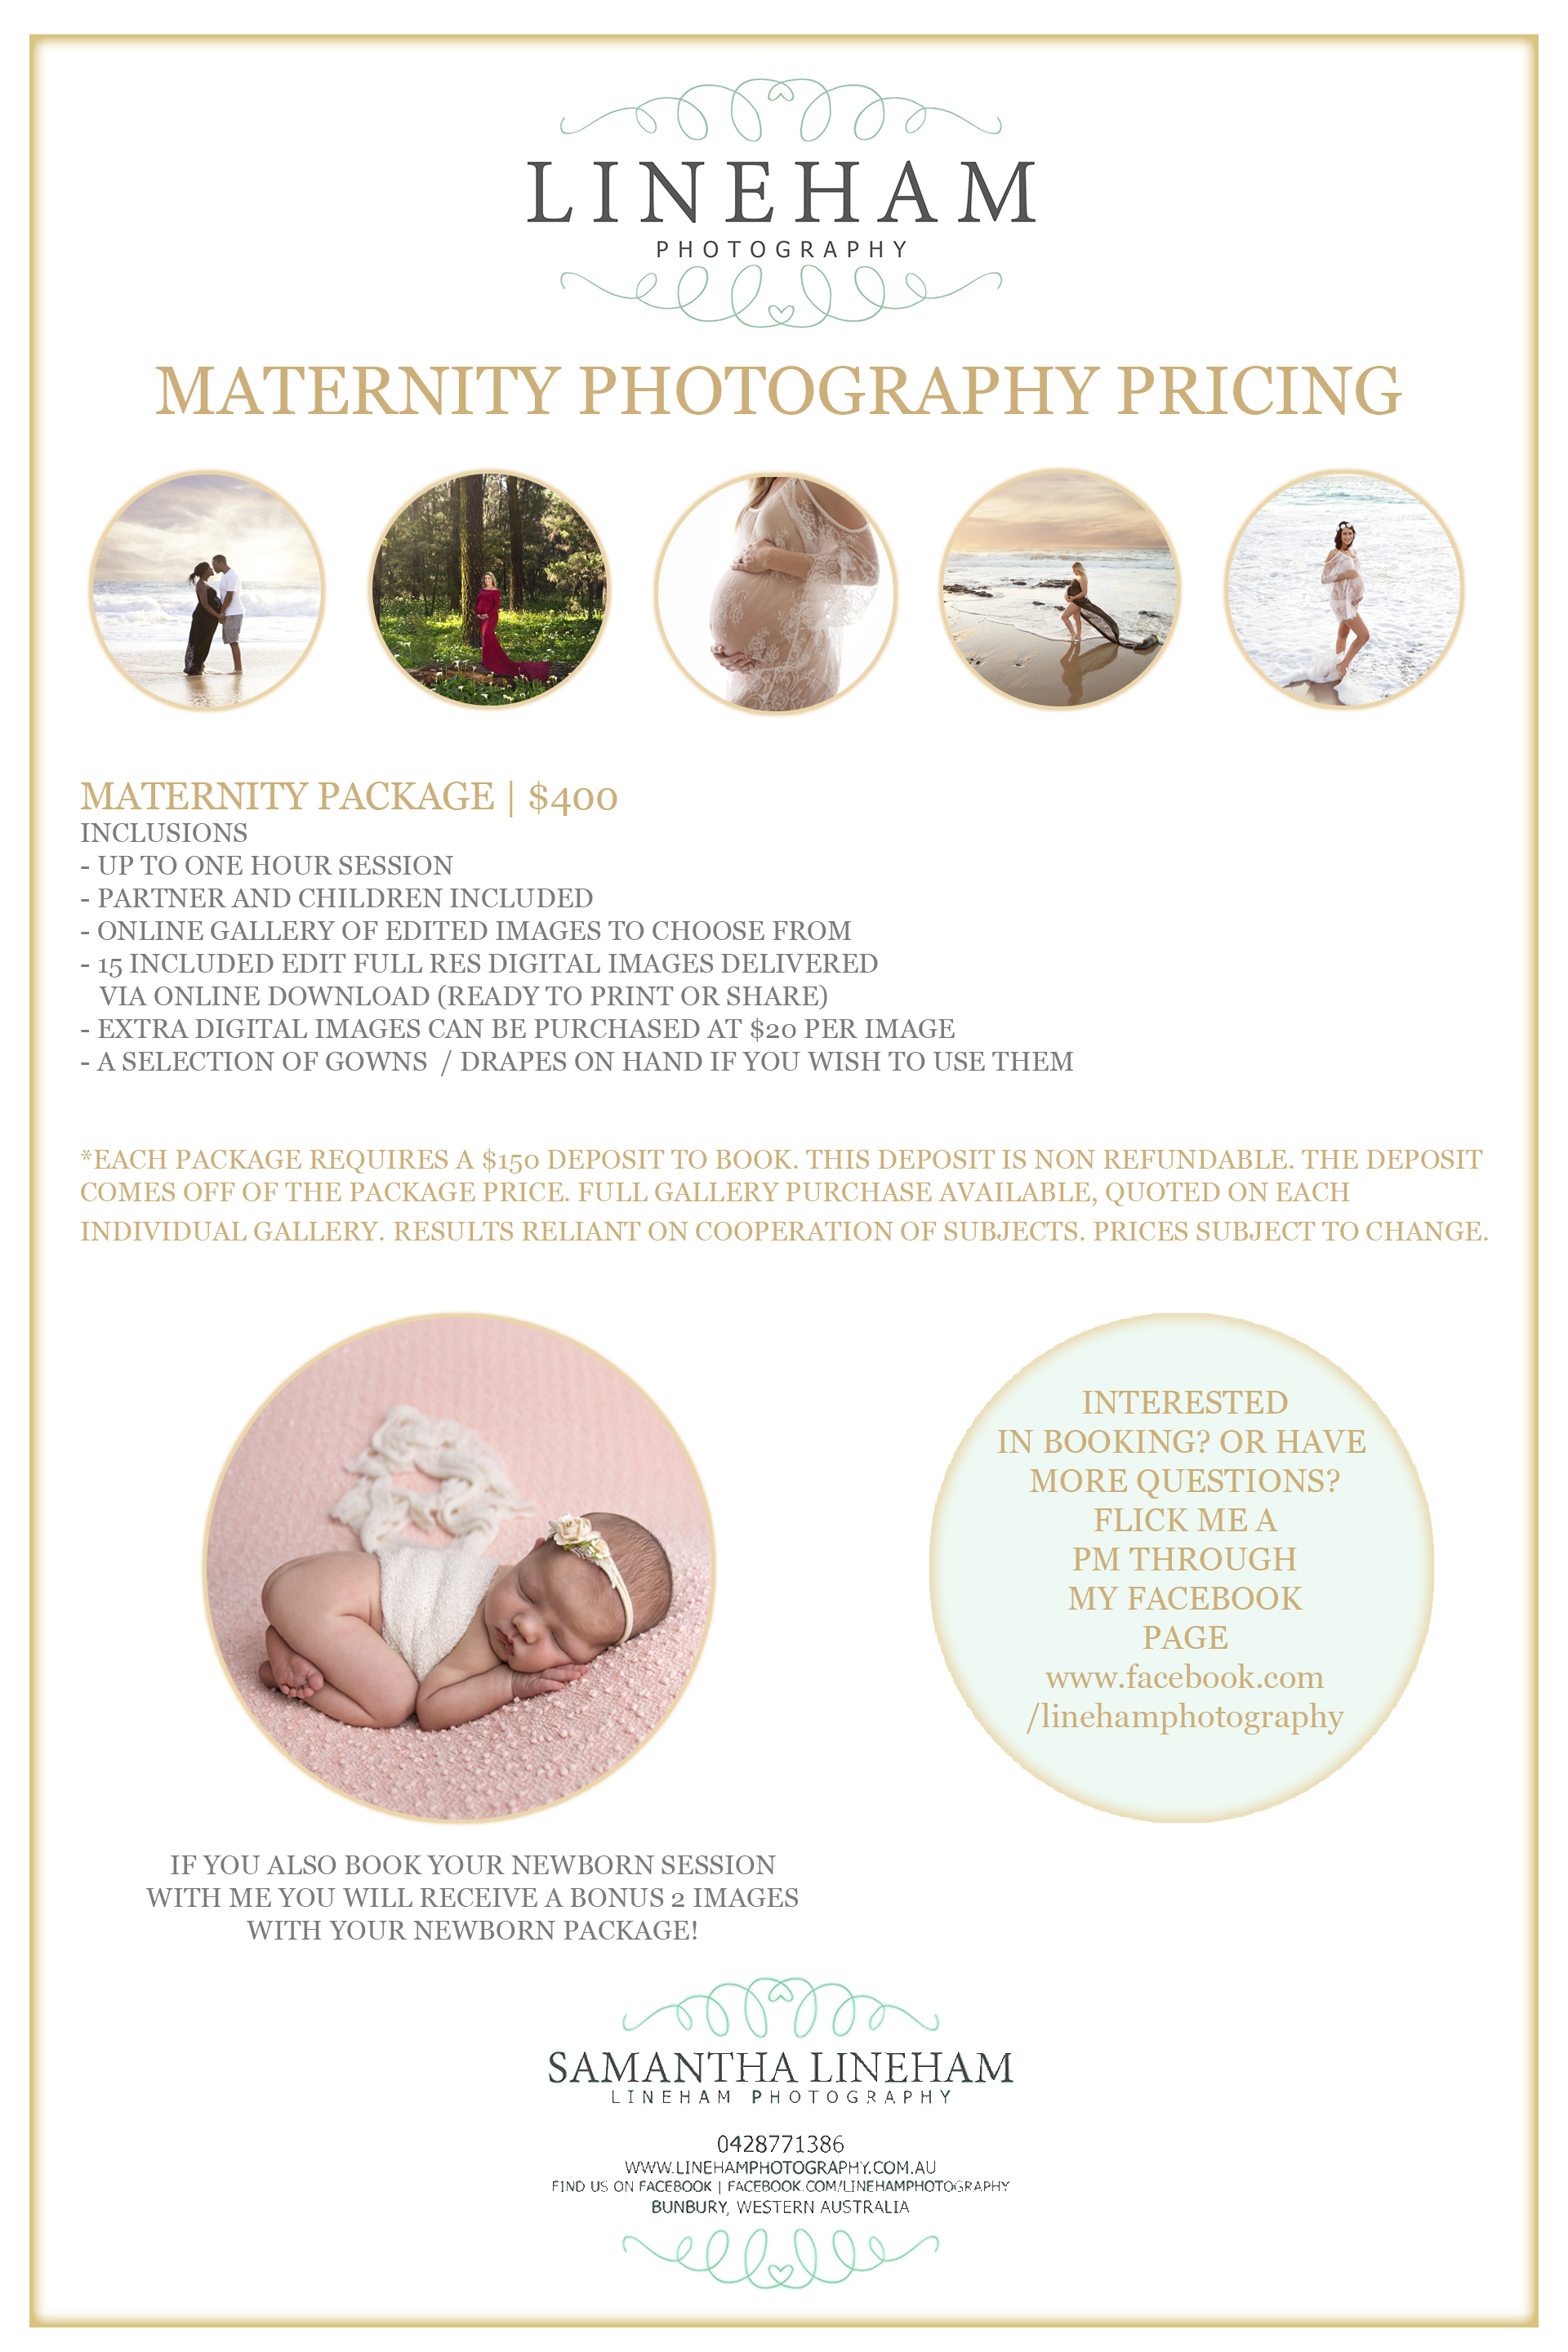 Maternity pricing 2019 lineham photography built using wordpress and the mesmerize theme